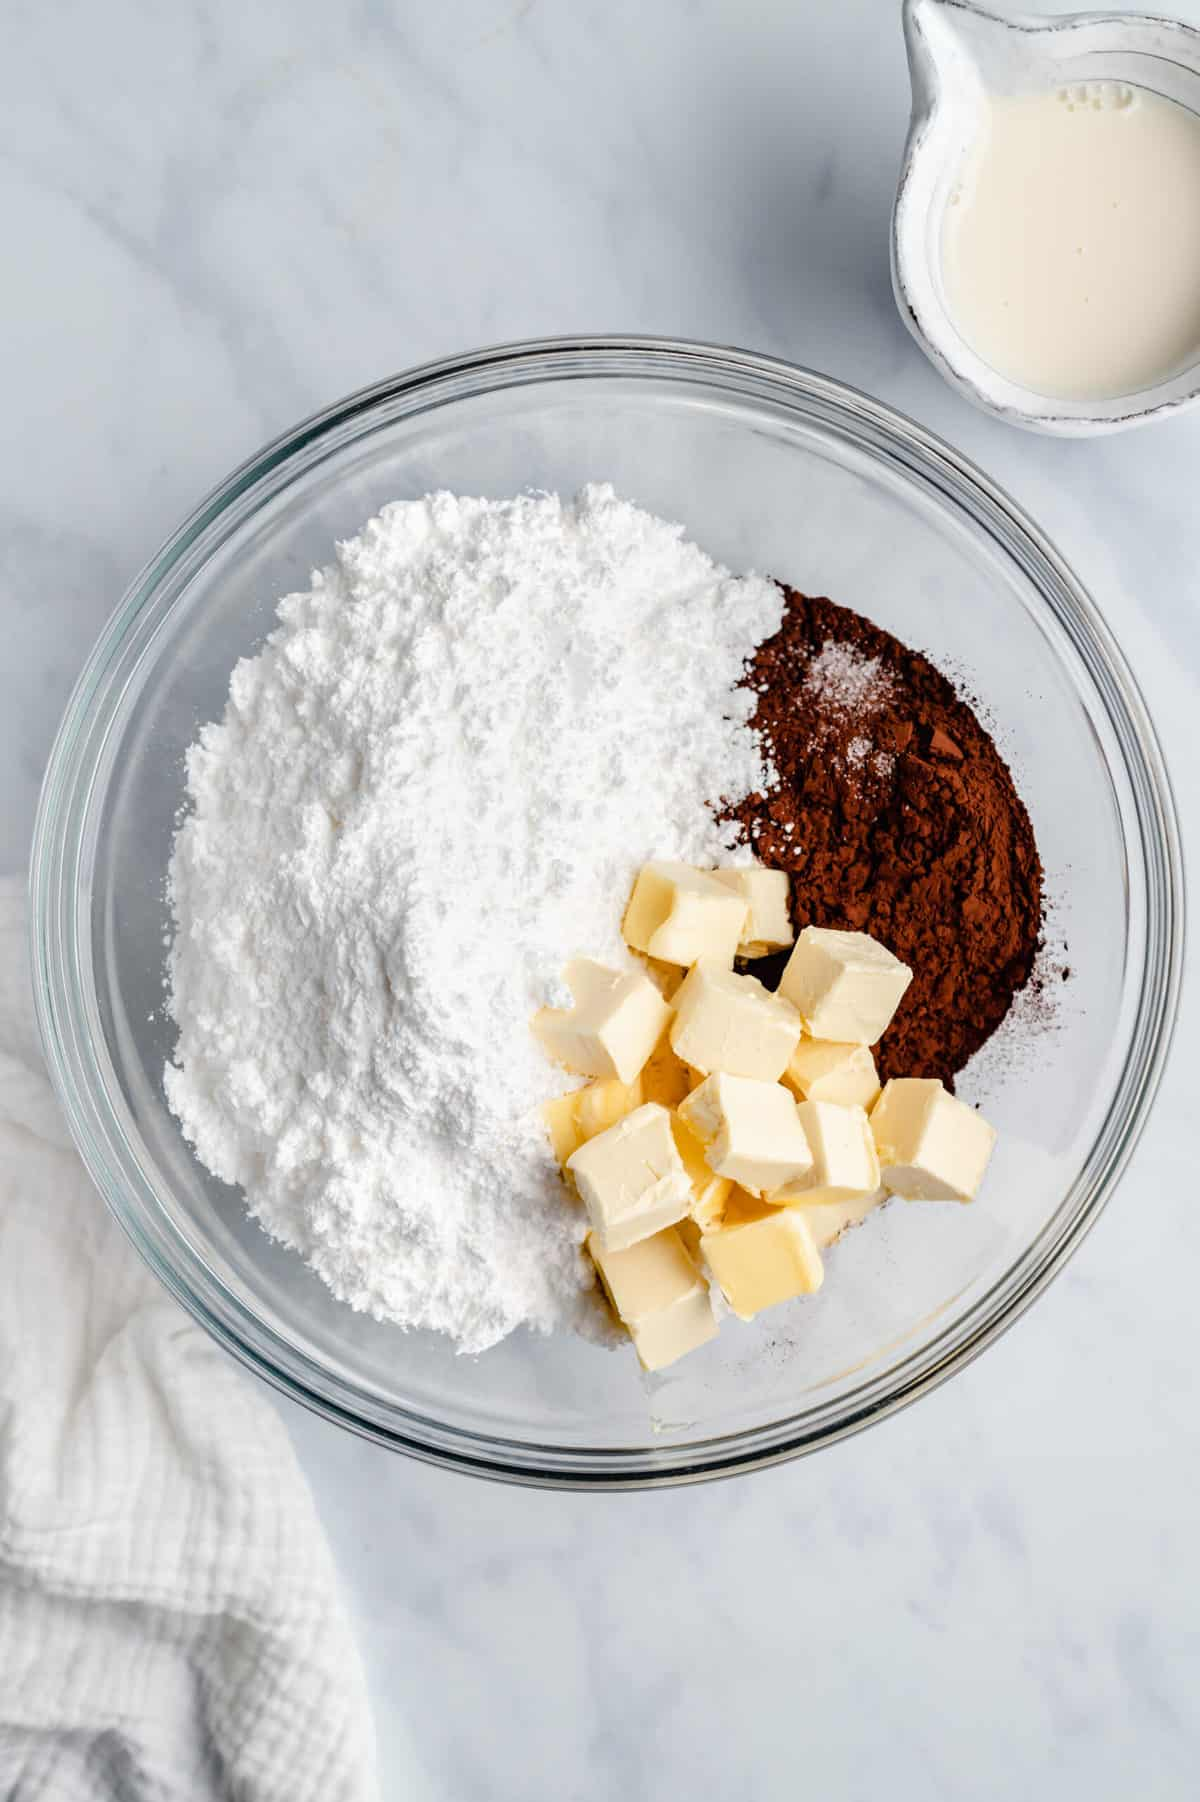 Powdered sugar, butter, and cocoa powder in a glass mixing bowl